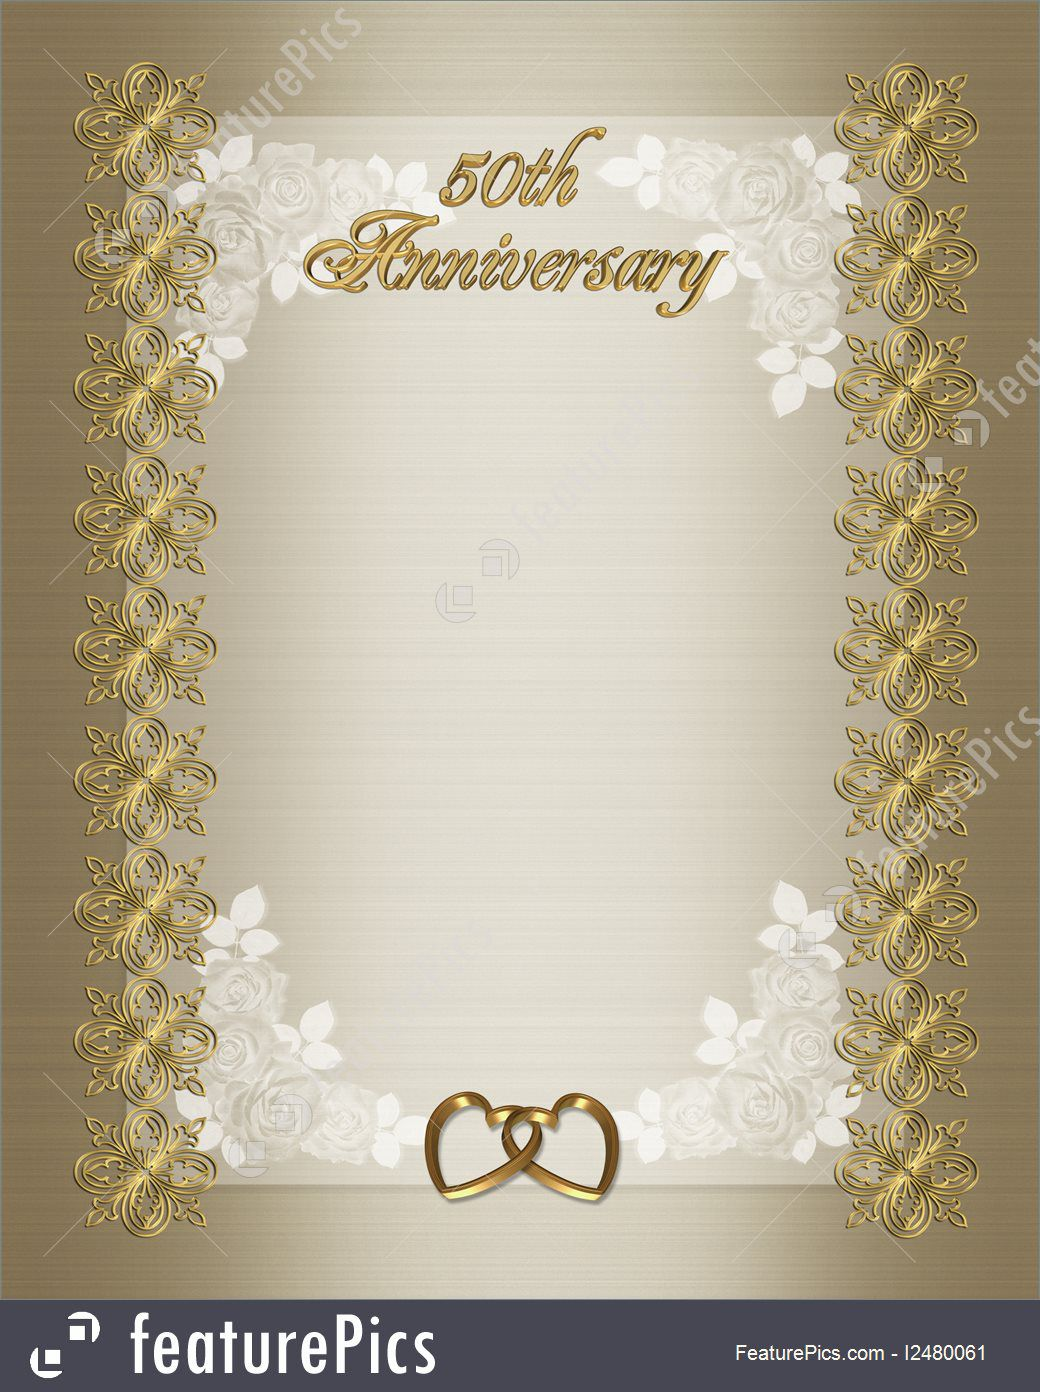 009 Impressive 50th Wedding Anniversary Invitation Sample Inspiration  Samples Free Party Template Card IdeaFull